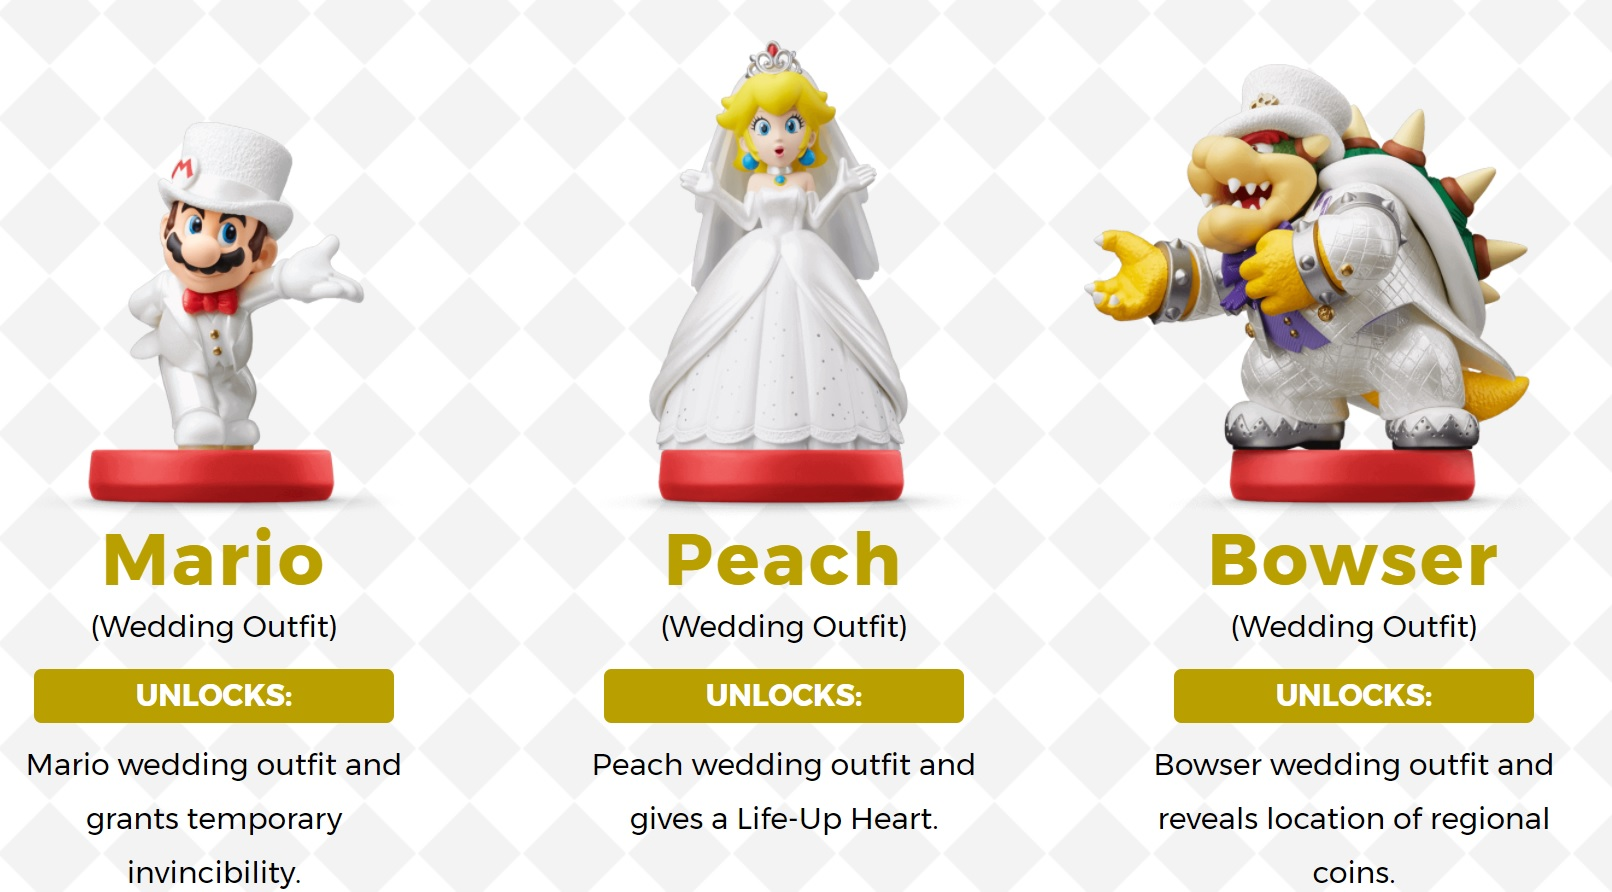 Wedding Peach Amiibo Unlocks A Bridal Dress For Mario Nintendo Wire